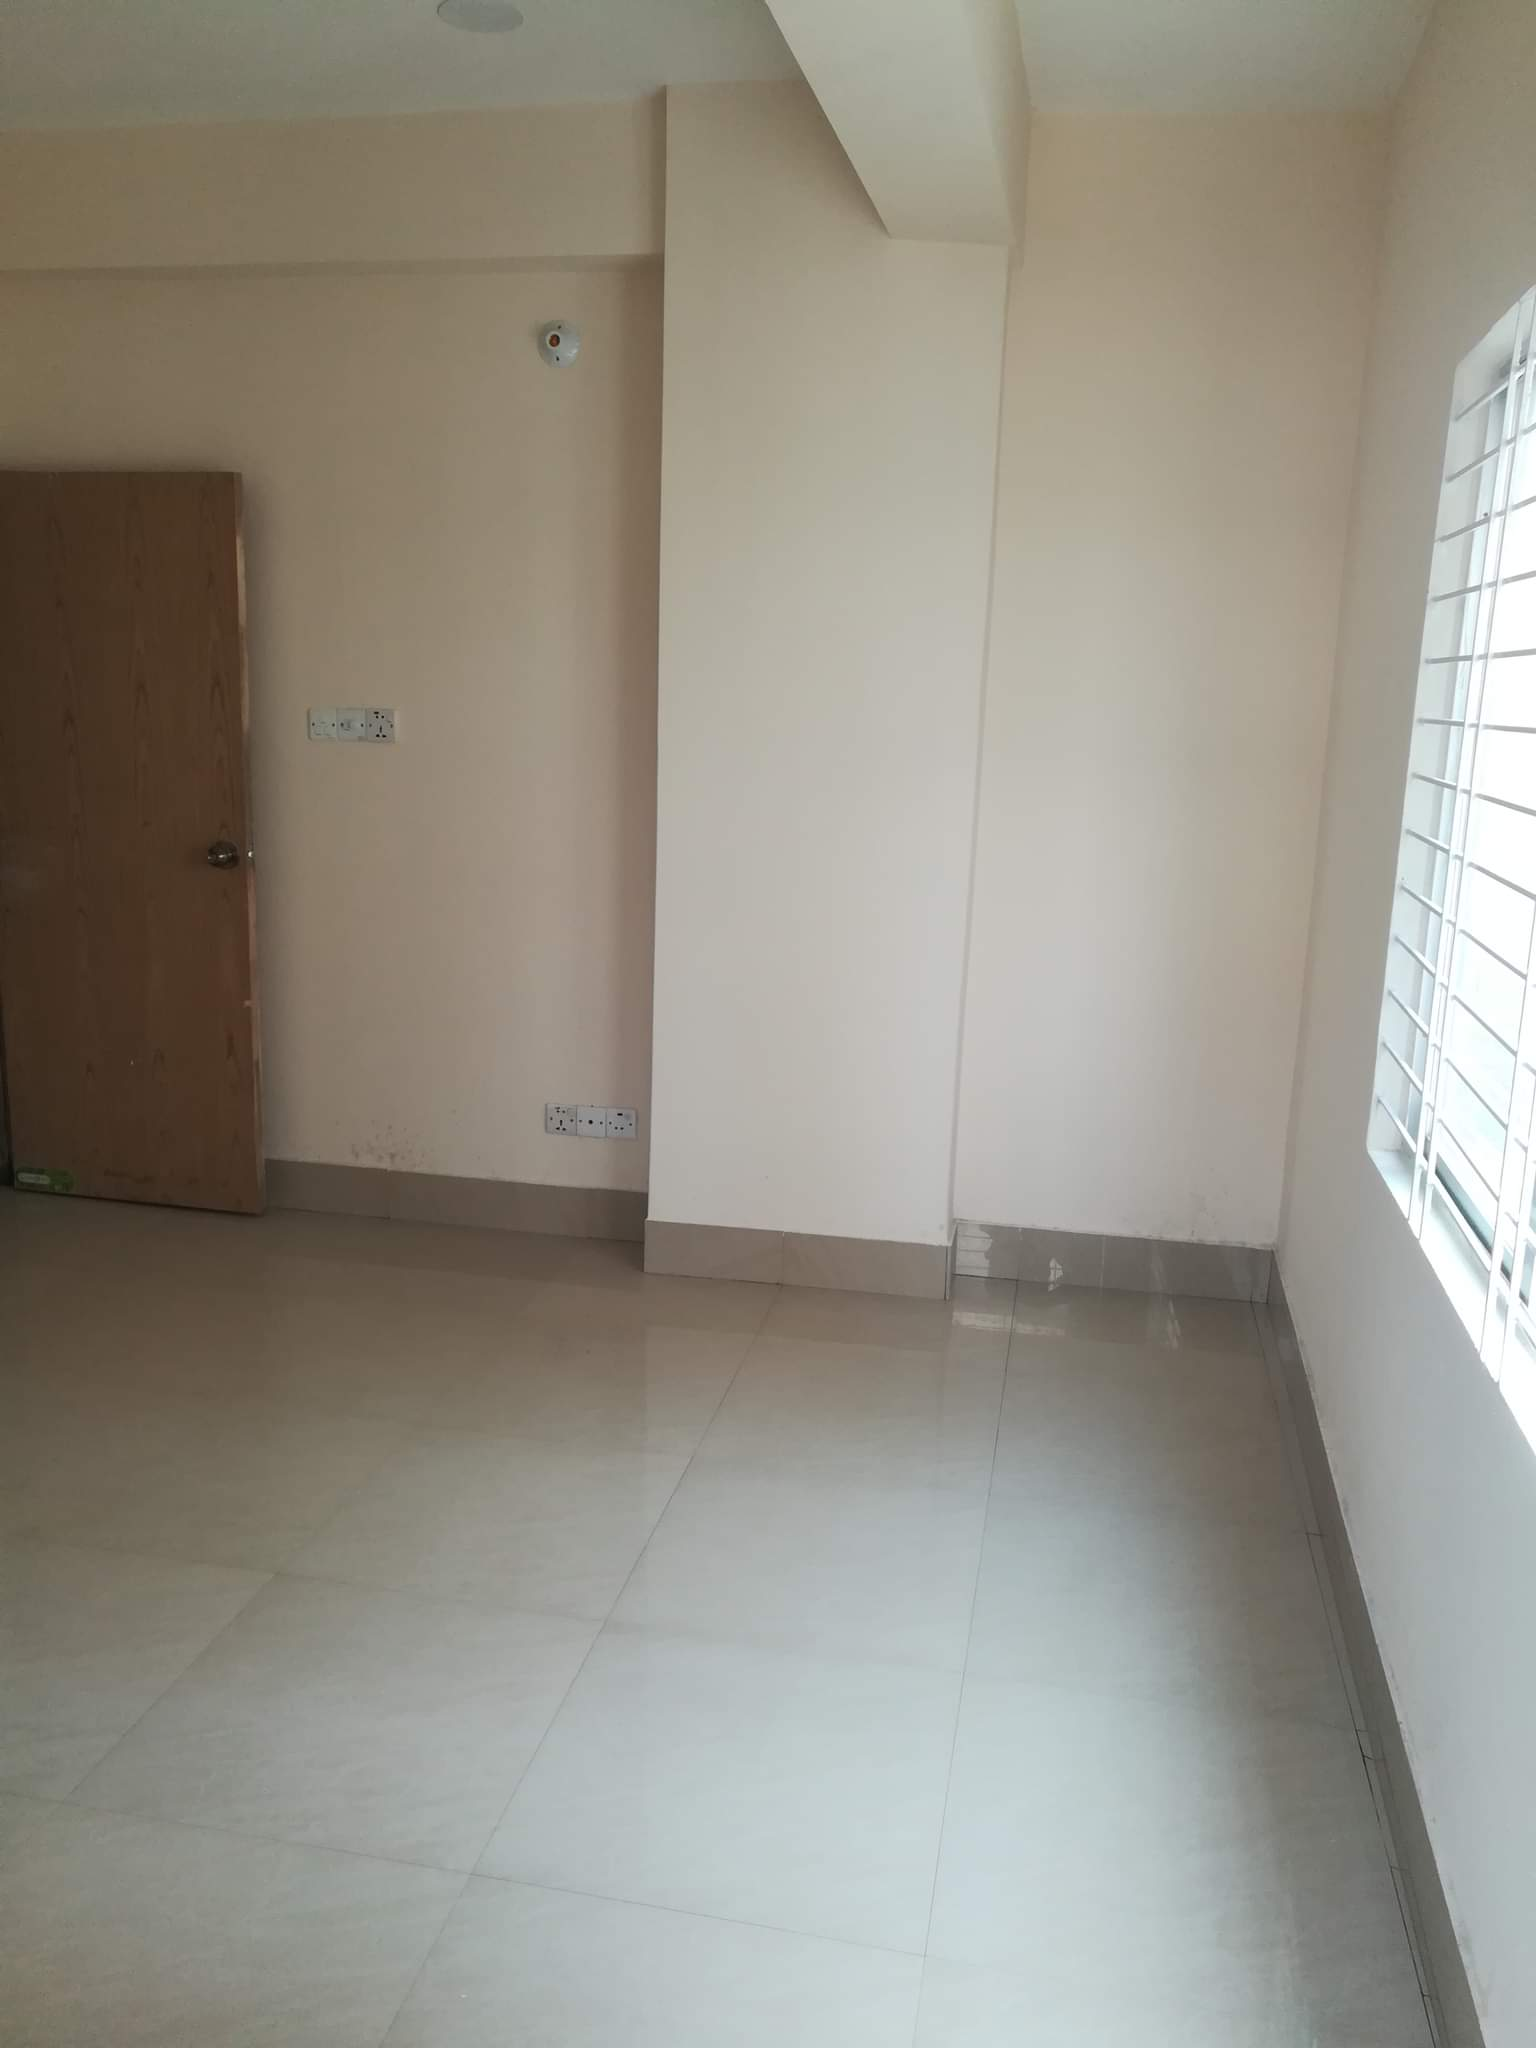 1077-sft-apartment-for-sale-in-khilgaon-5th-floor-469258